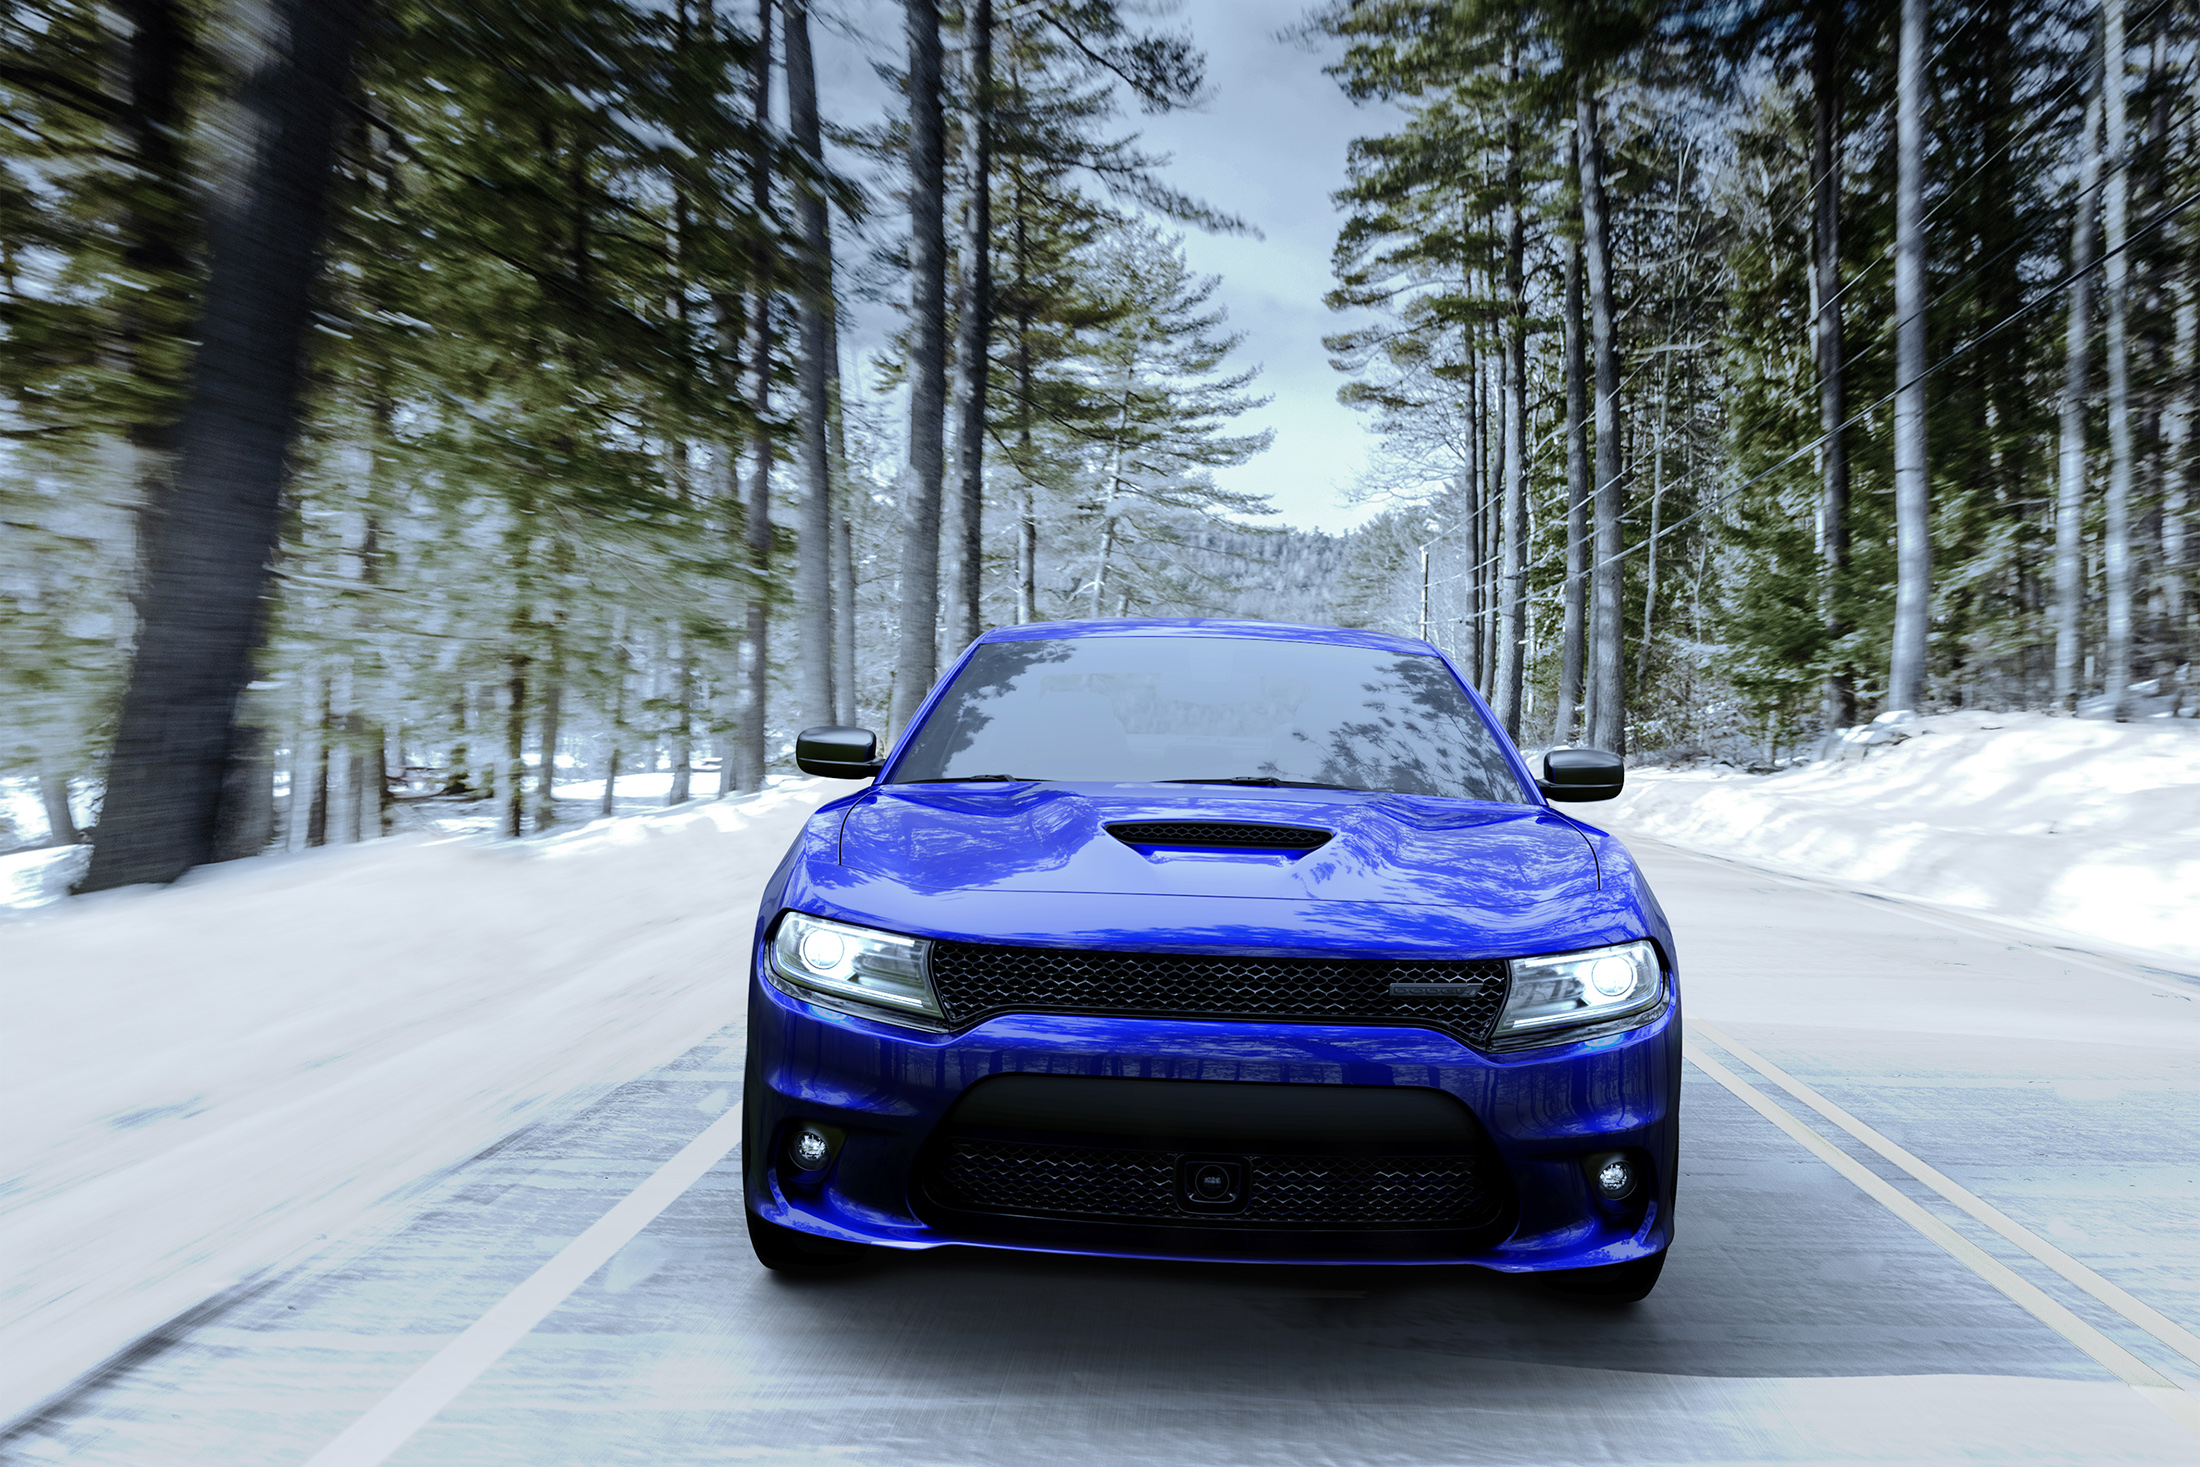 Dodge Flexes Its Winter Muscle With 2020 Charger GT AWD